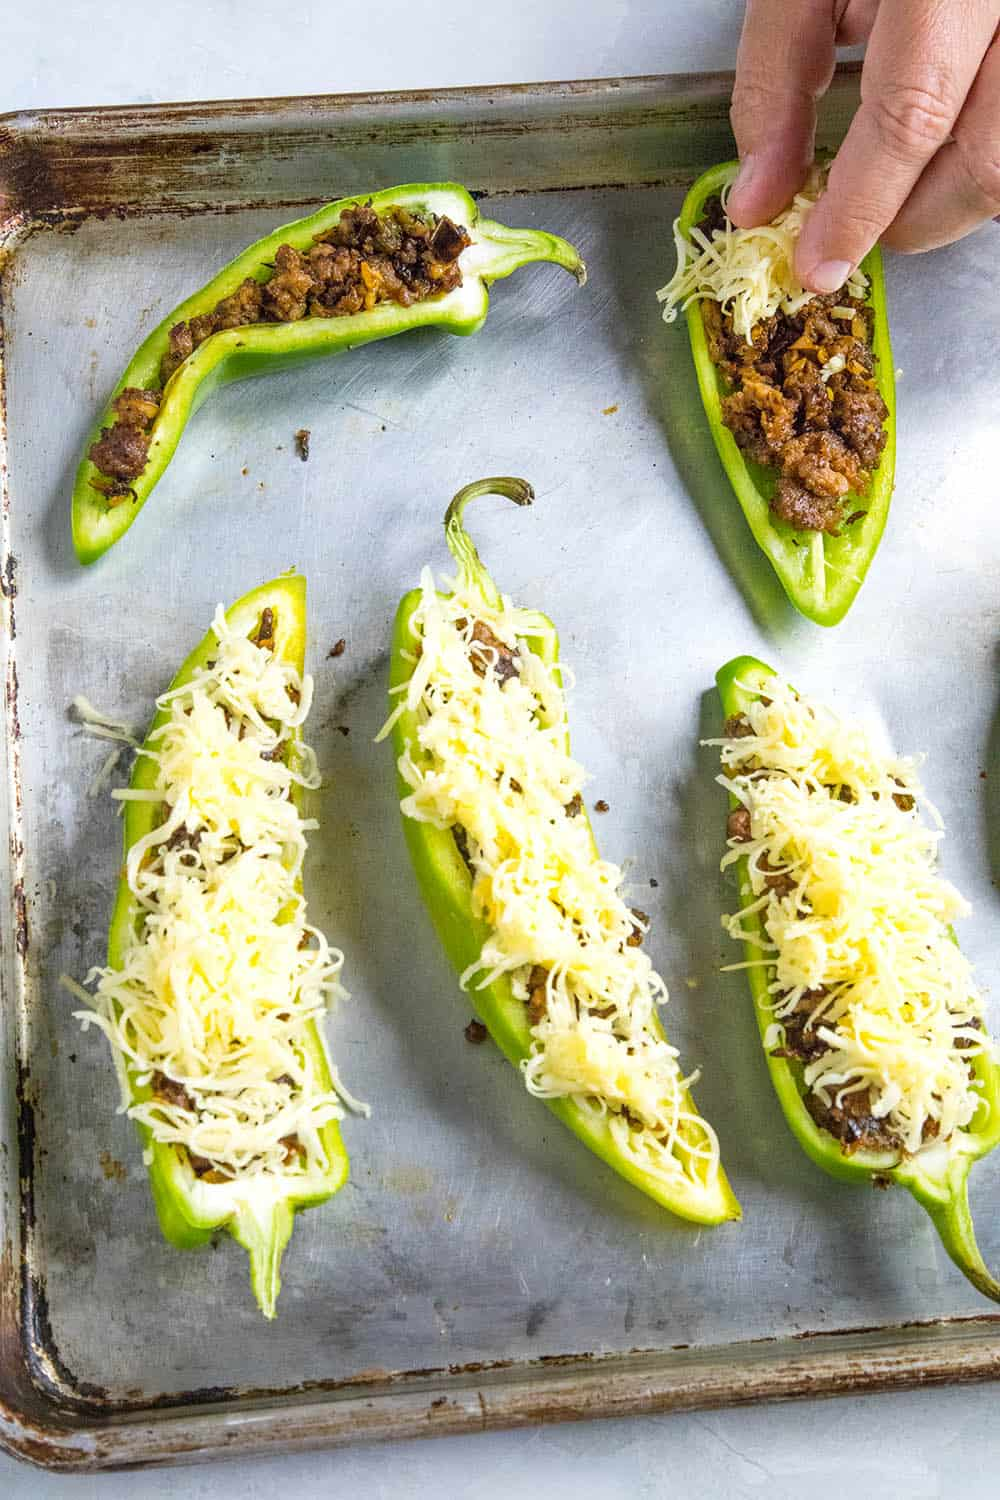 Adding cheese to our stuffed anaheim peppers